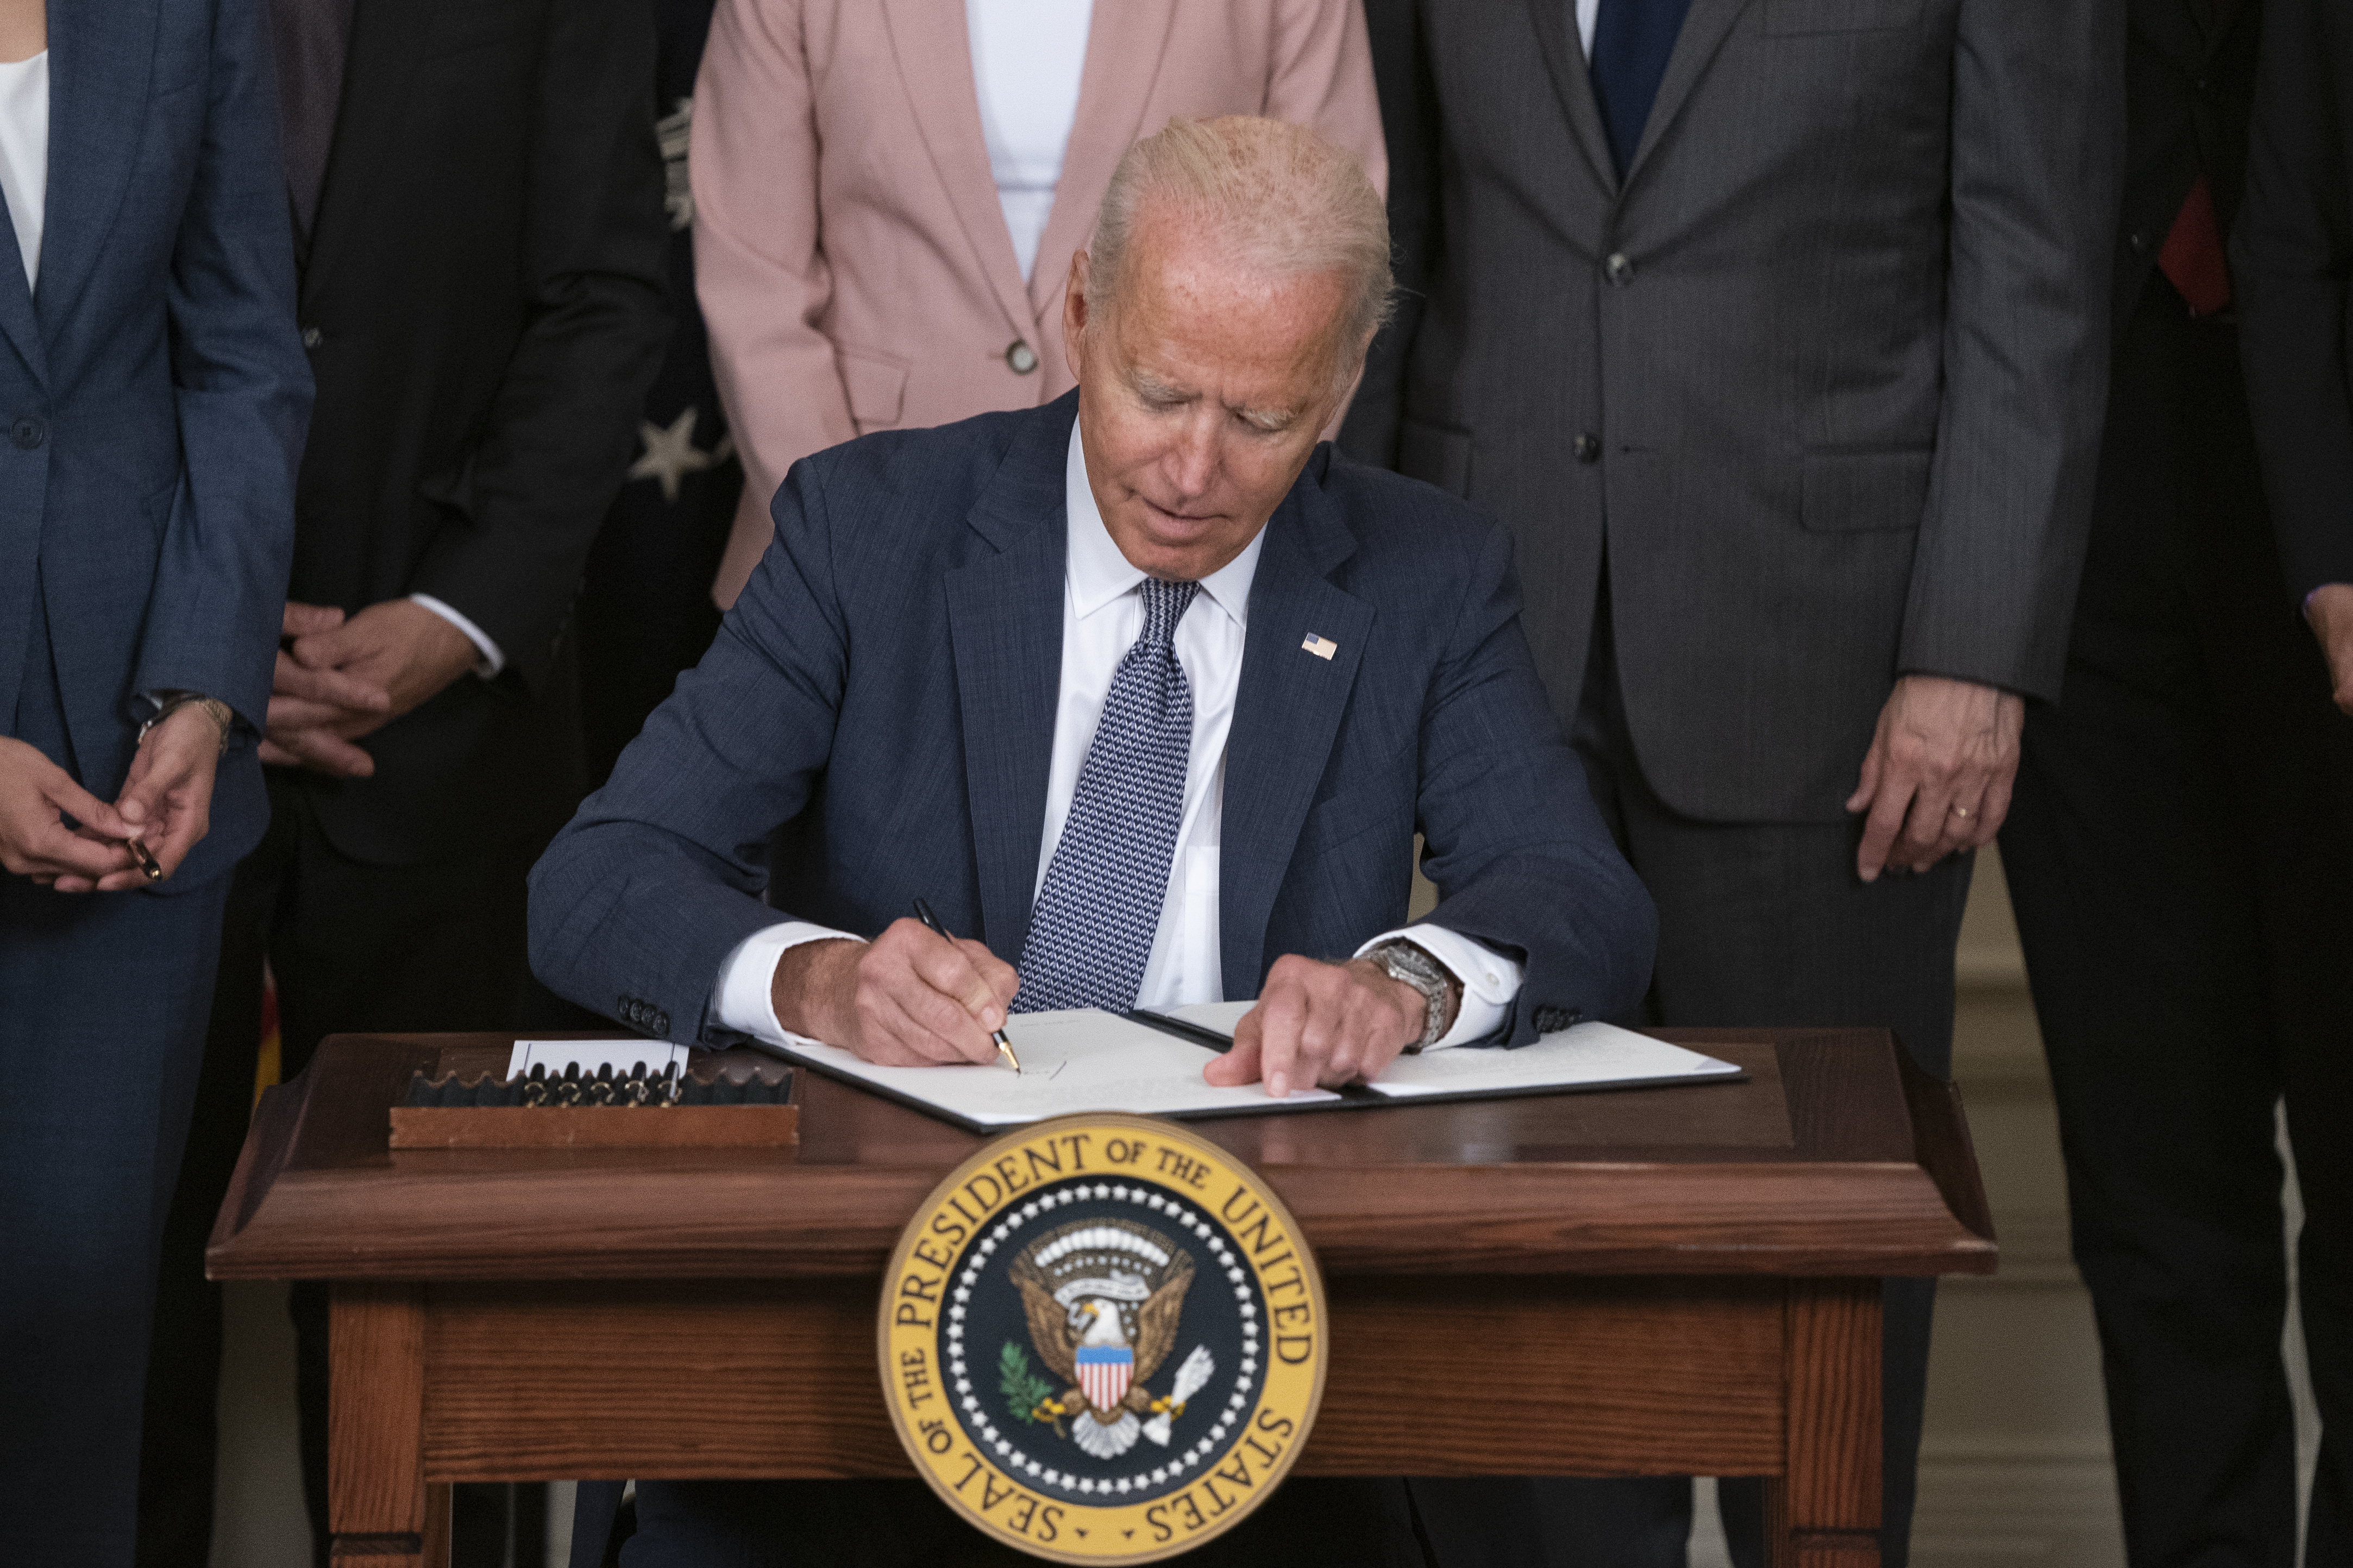 President Biden Delivers Remarks On Promoting American Economy Competition